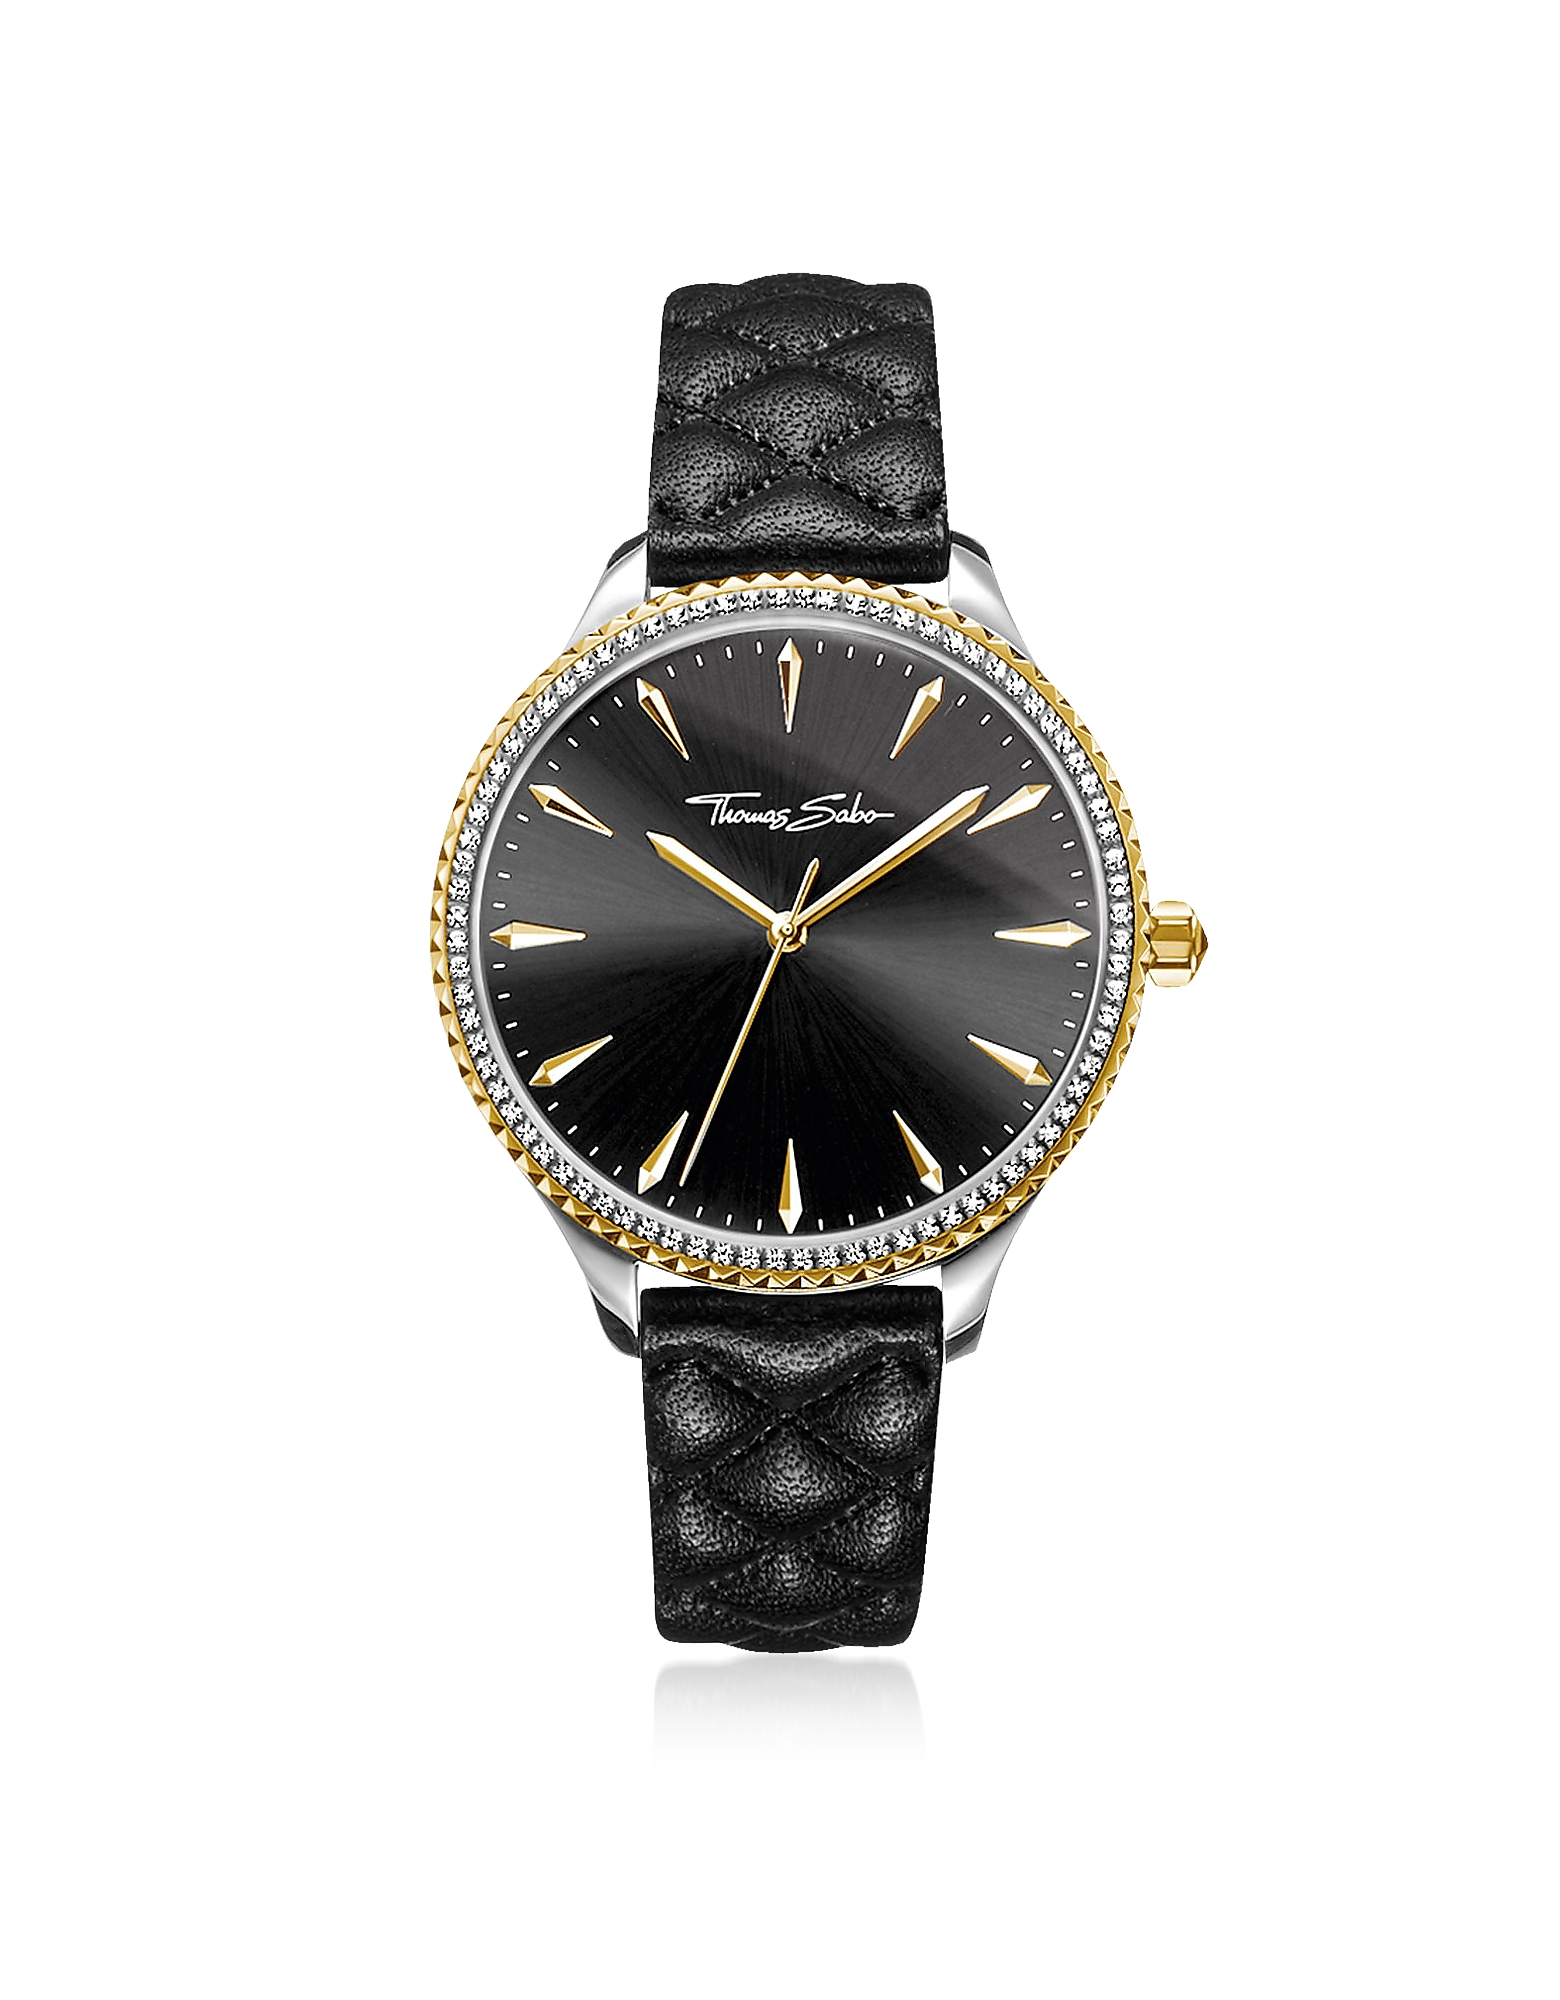 Rebel at Heart Two Tone Stainless Steel and Black Quilted Leather Strap Women's Watch w/Crystals